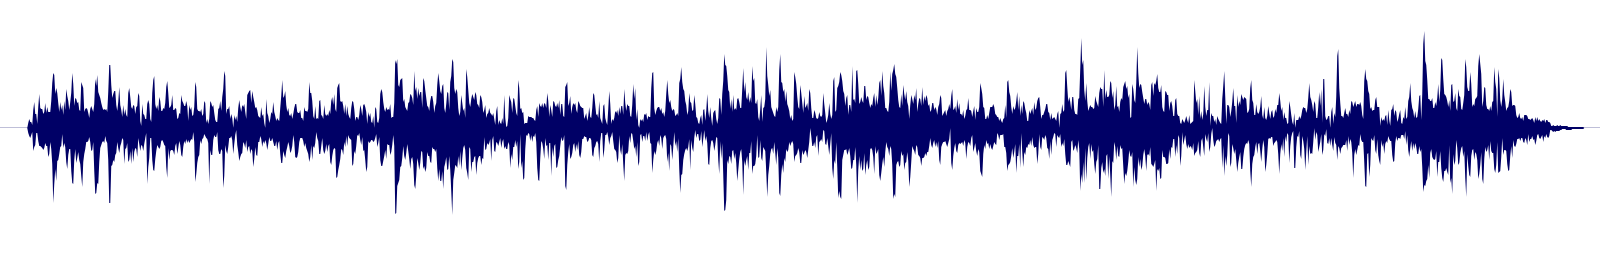 waveform of track #129063